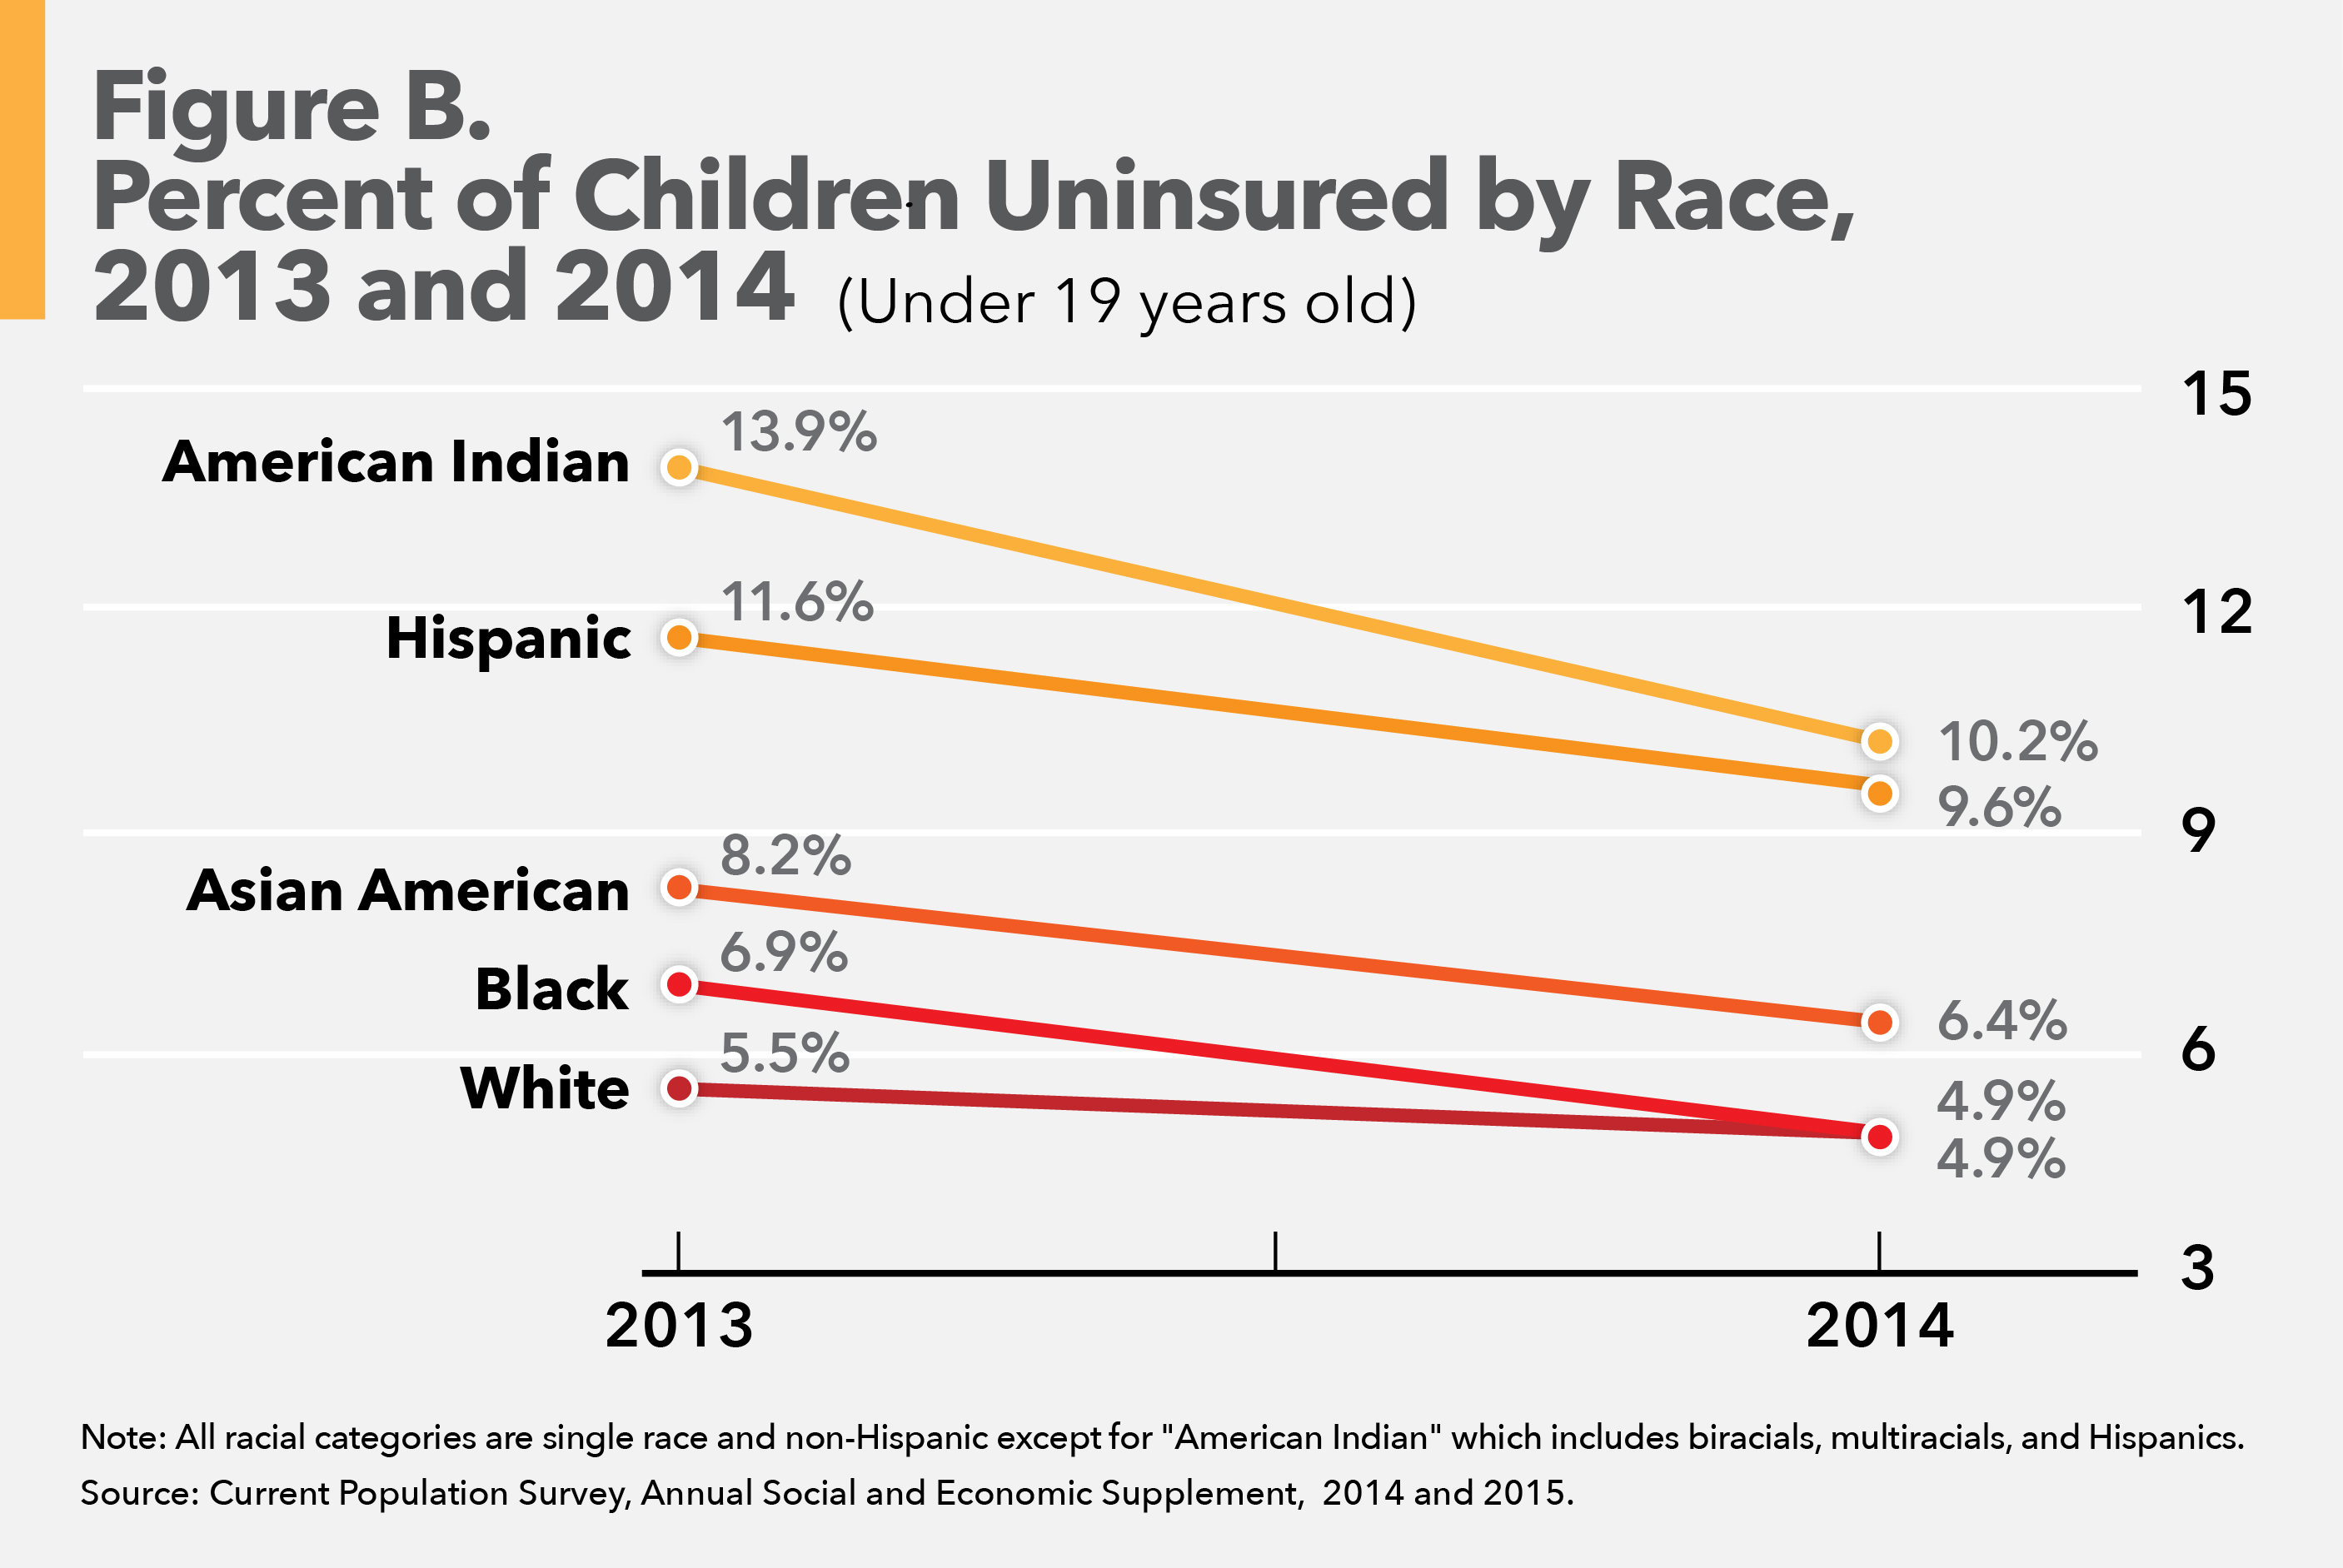 Percent of children uninsured by race, 2013 and 2014